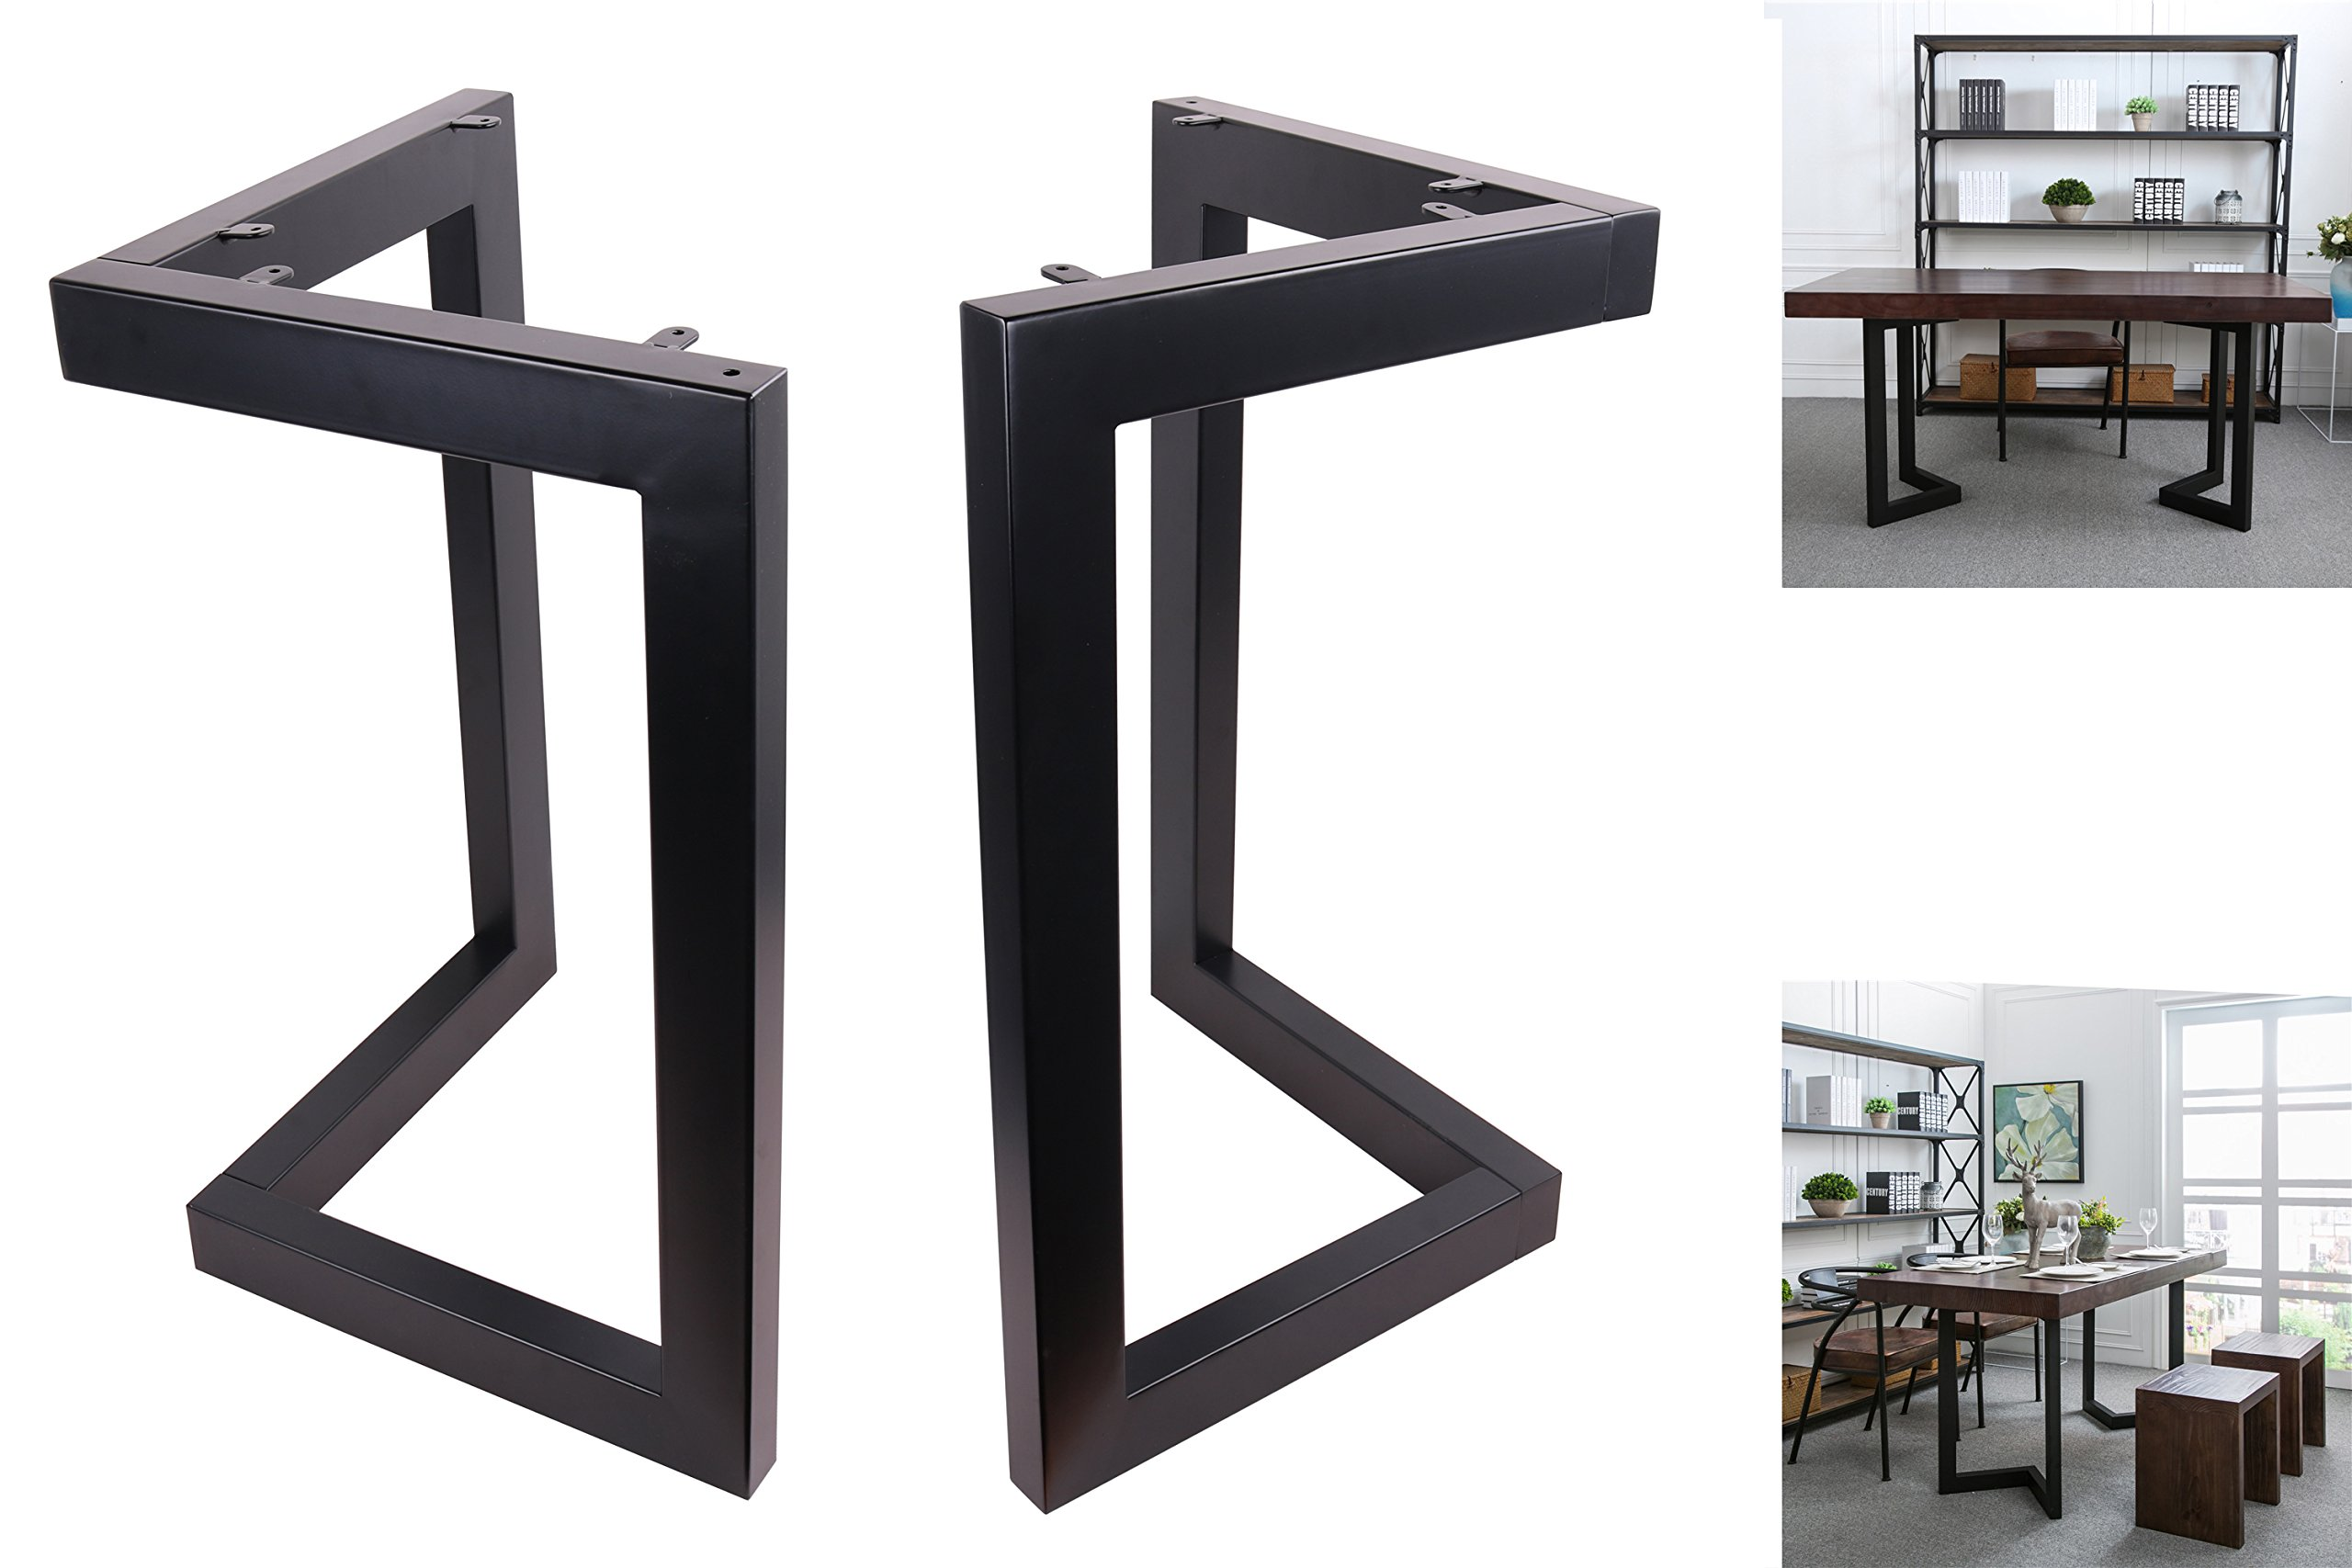 ECLV 28'' Dining Table Legs, L-shaped Steel table legs, Country Style Table Legs ,Office Table Legs,Computer Desk Legs,Industrial kitchen table legs,Set of 2,Black